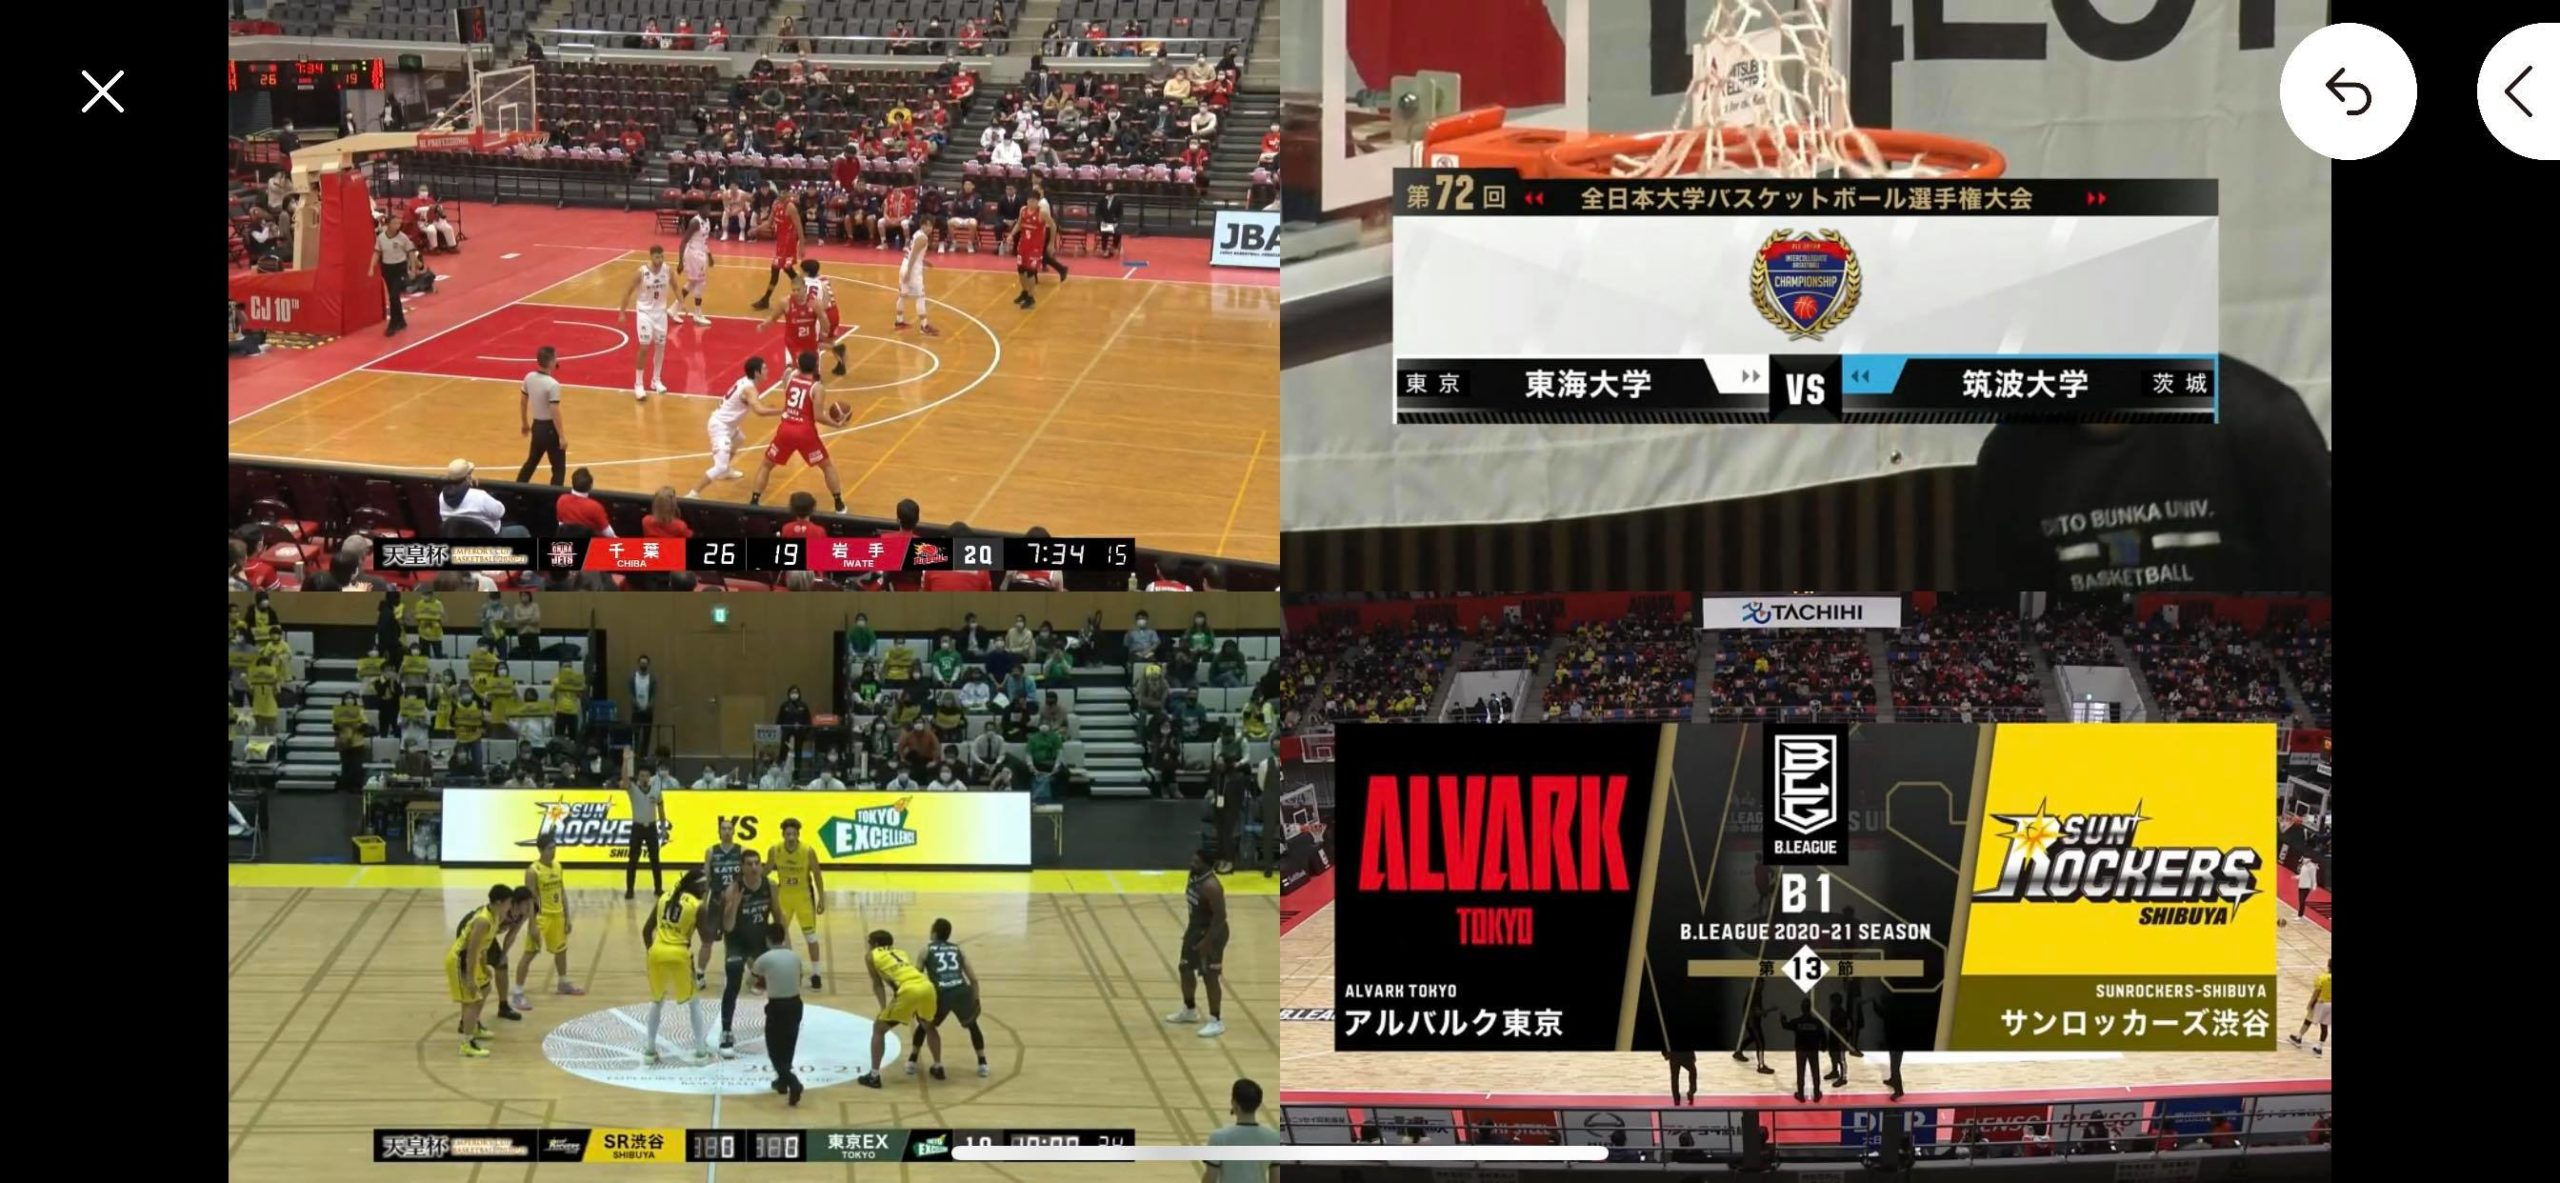 BasketLive-App-4screen